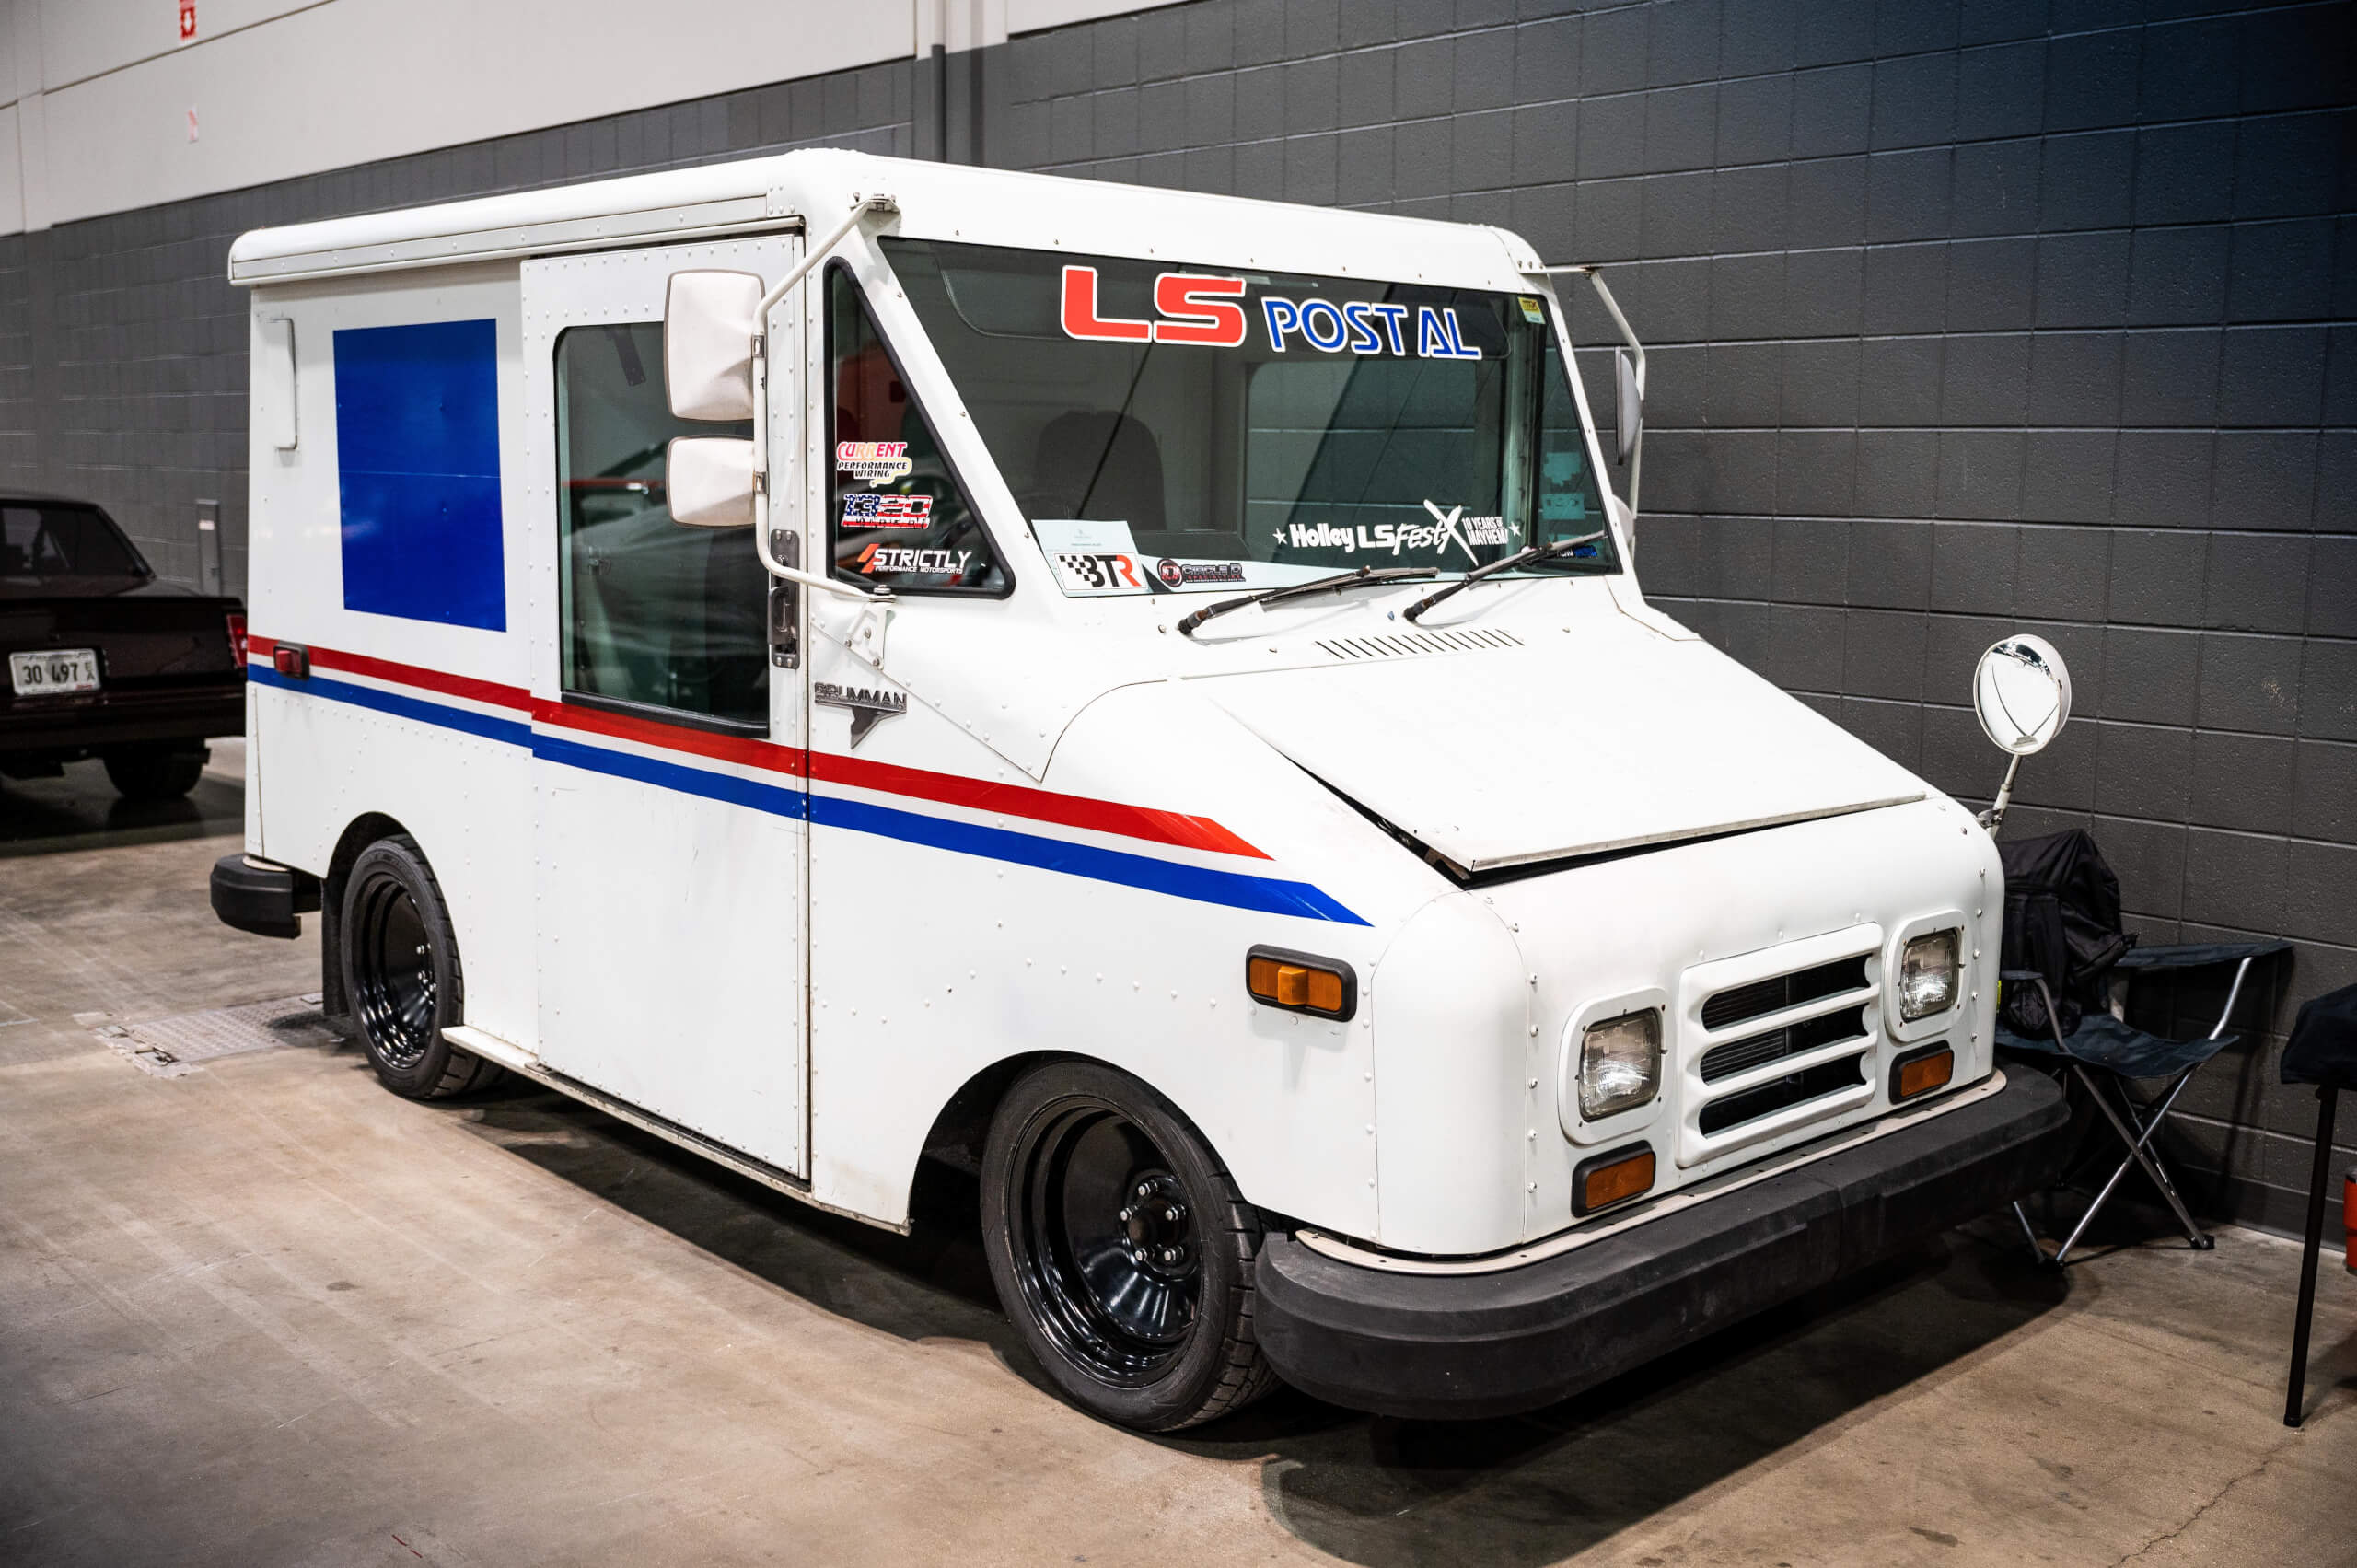 This Grumman LLV postal van has a modern LS V8 under the hood.